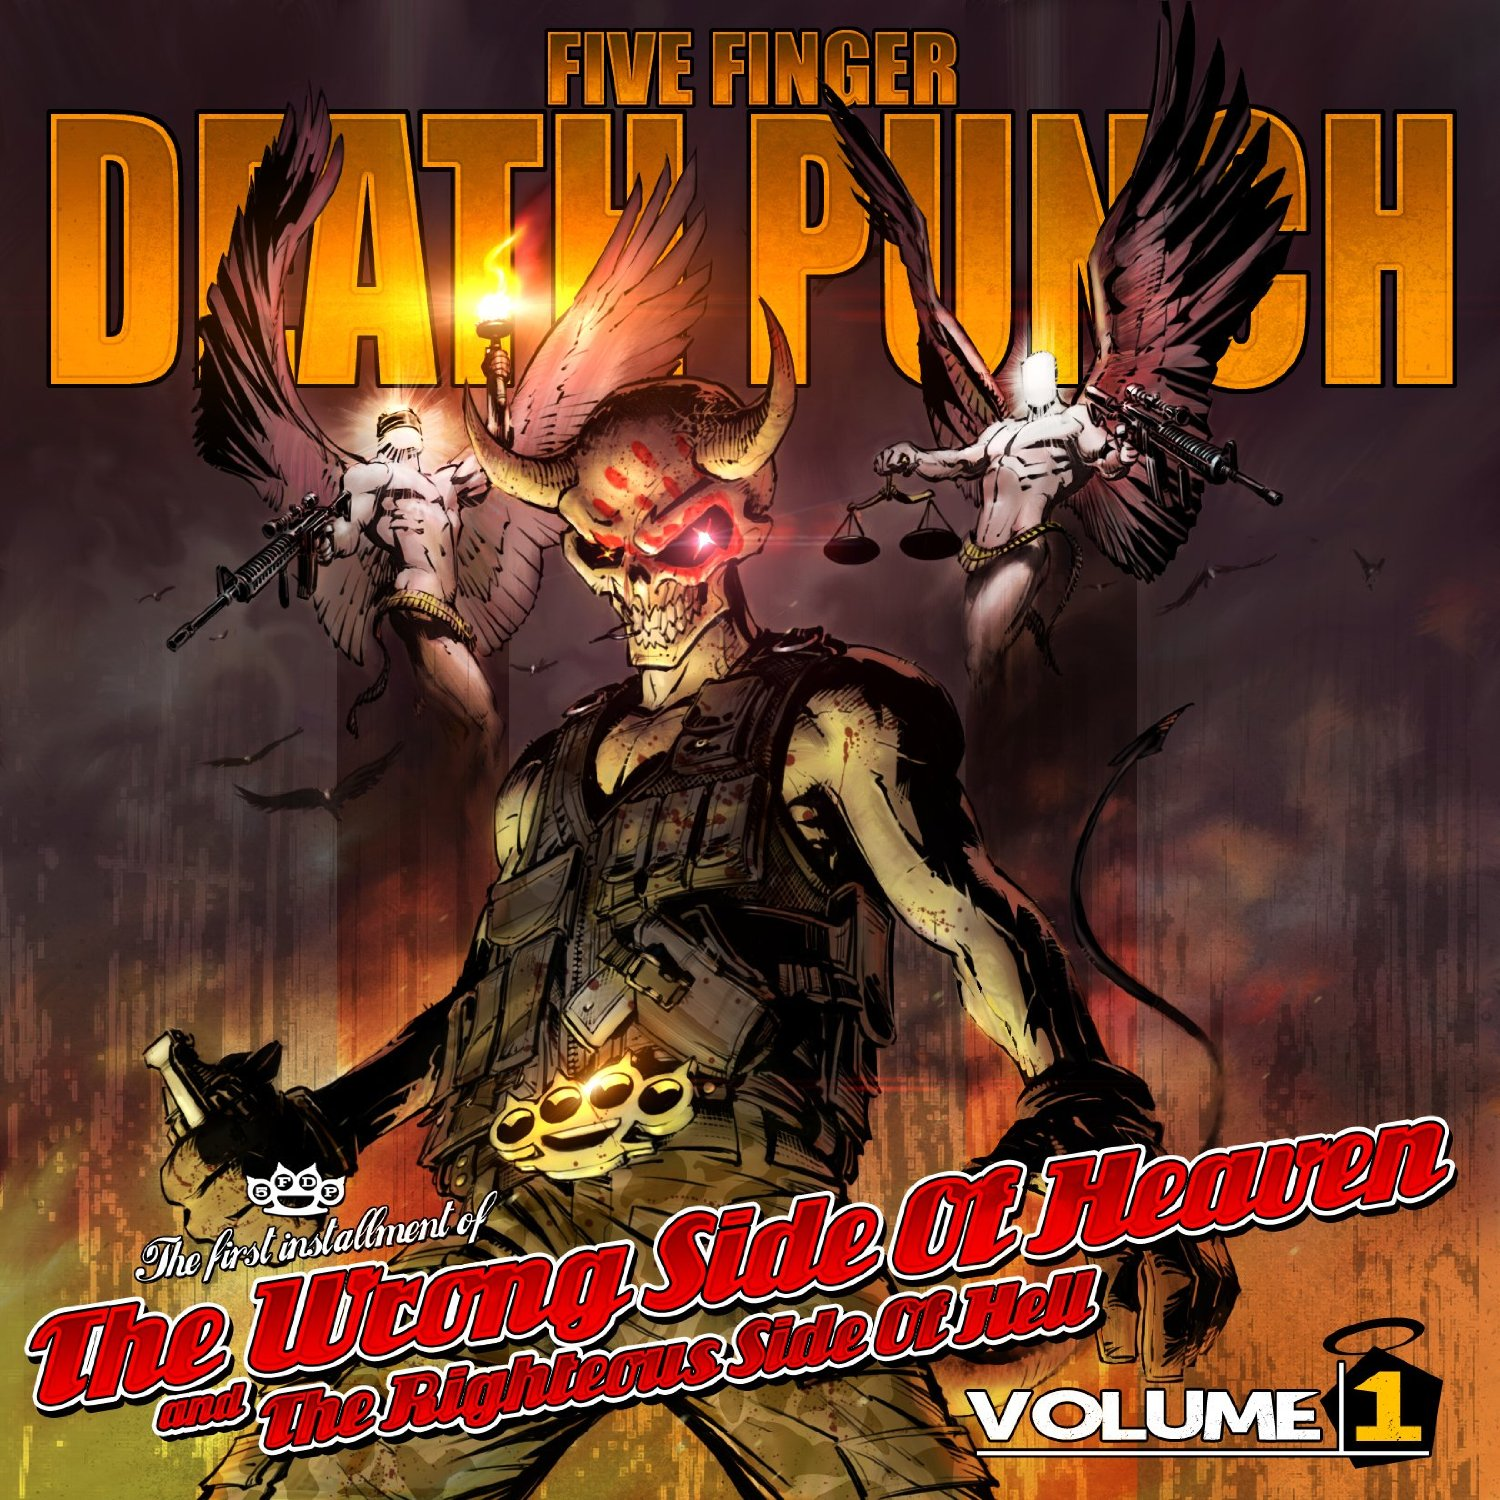 Five Finger Death Punch You cover art